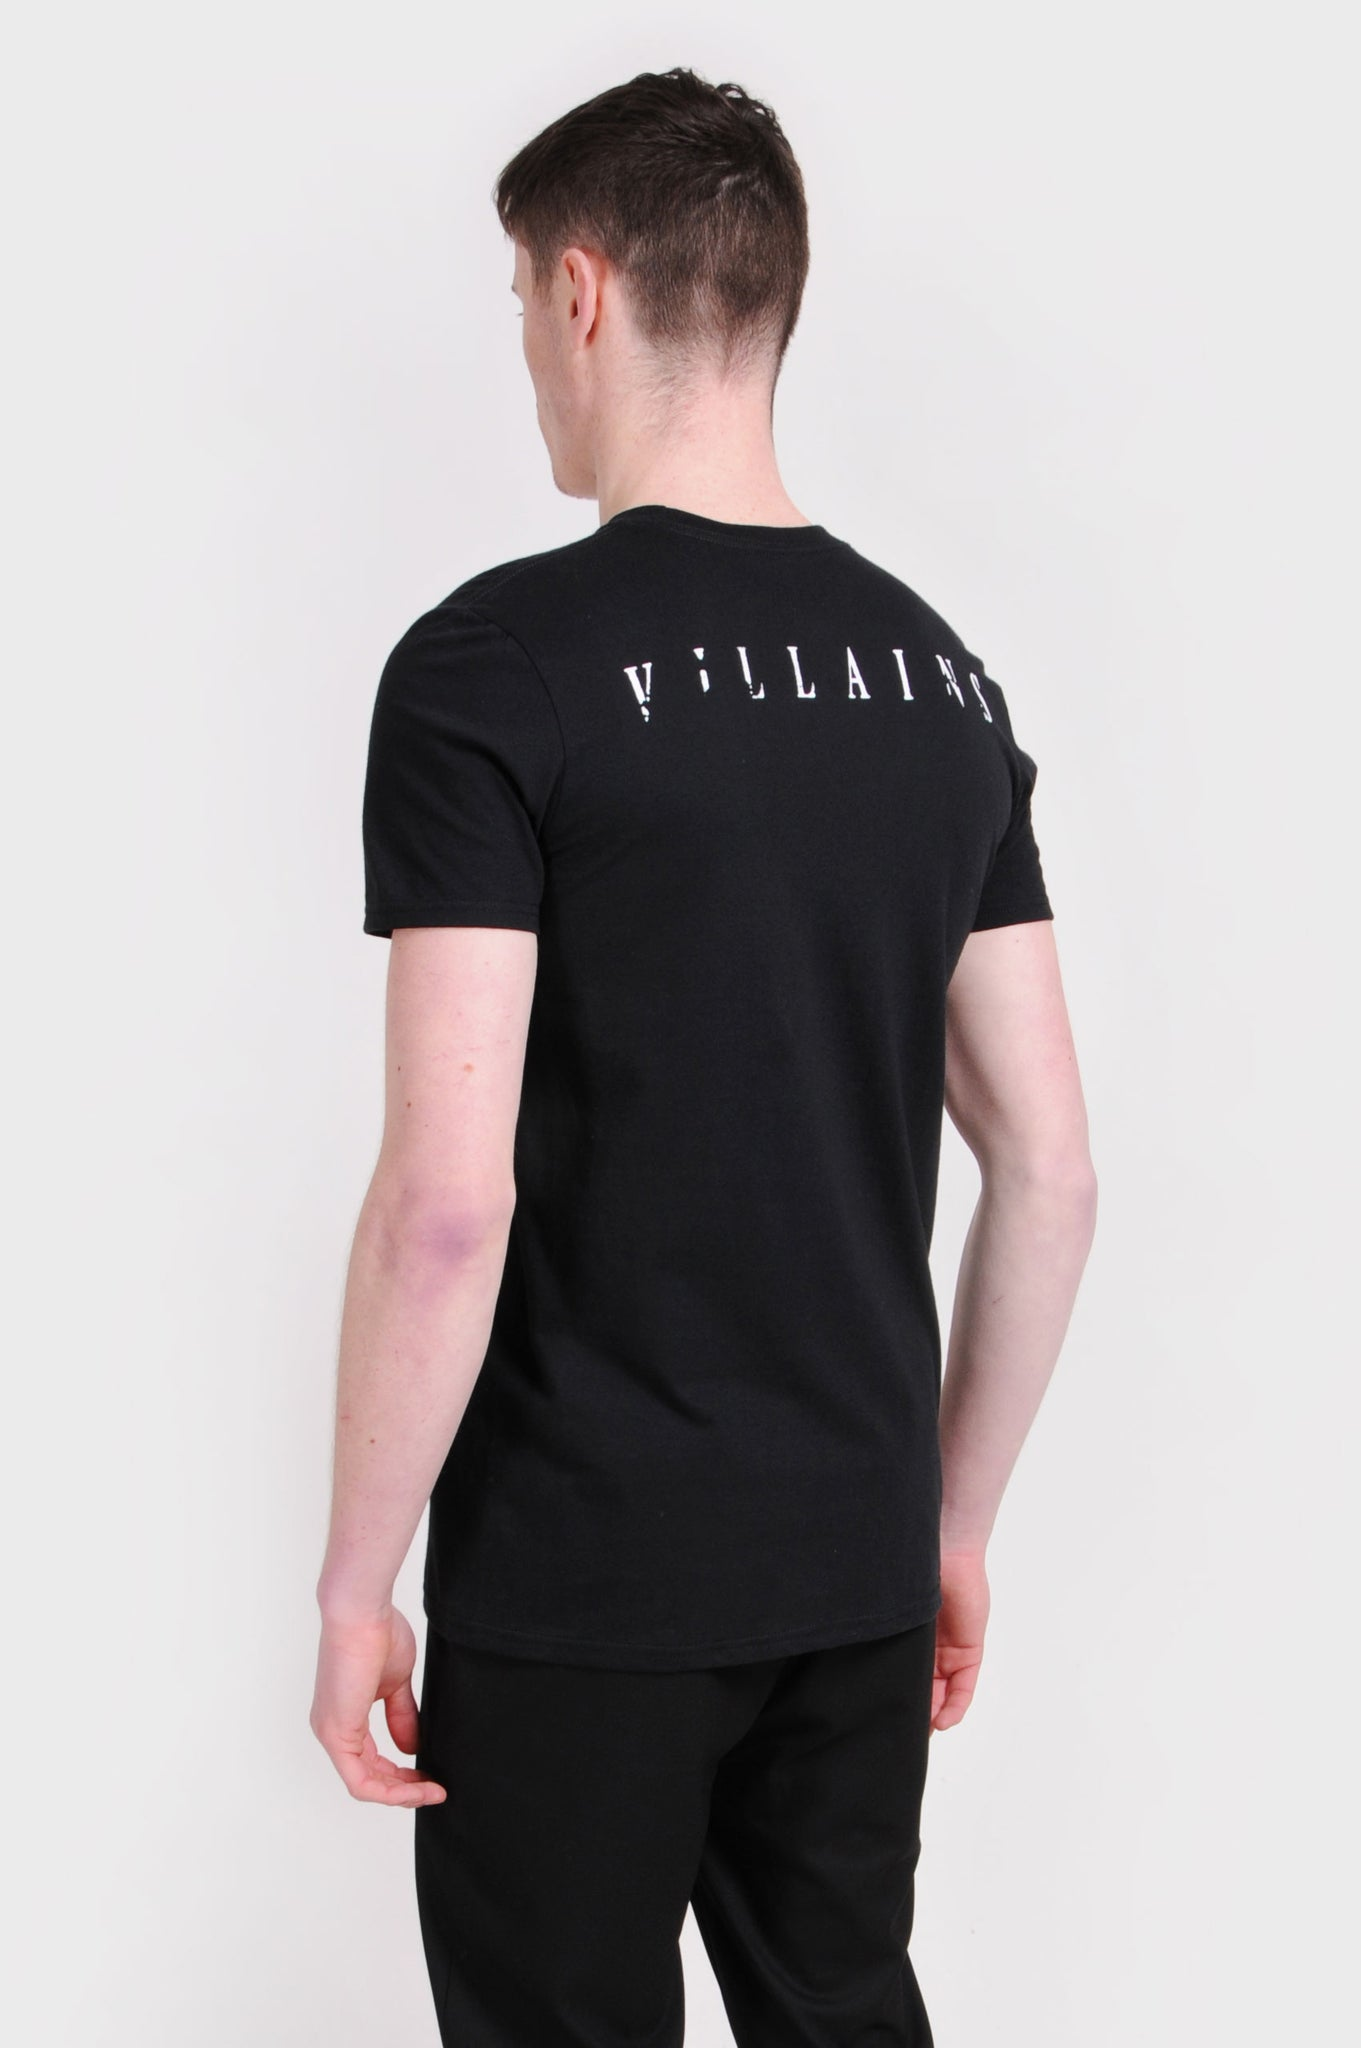 Black Villains T-Shirt